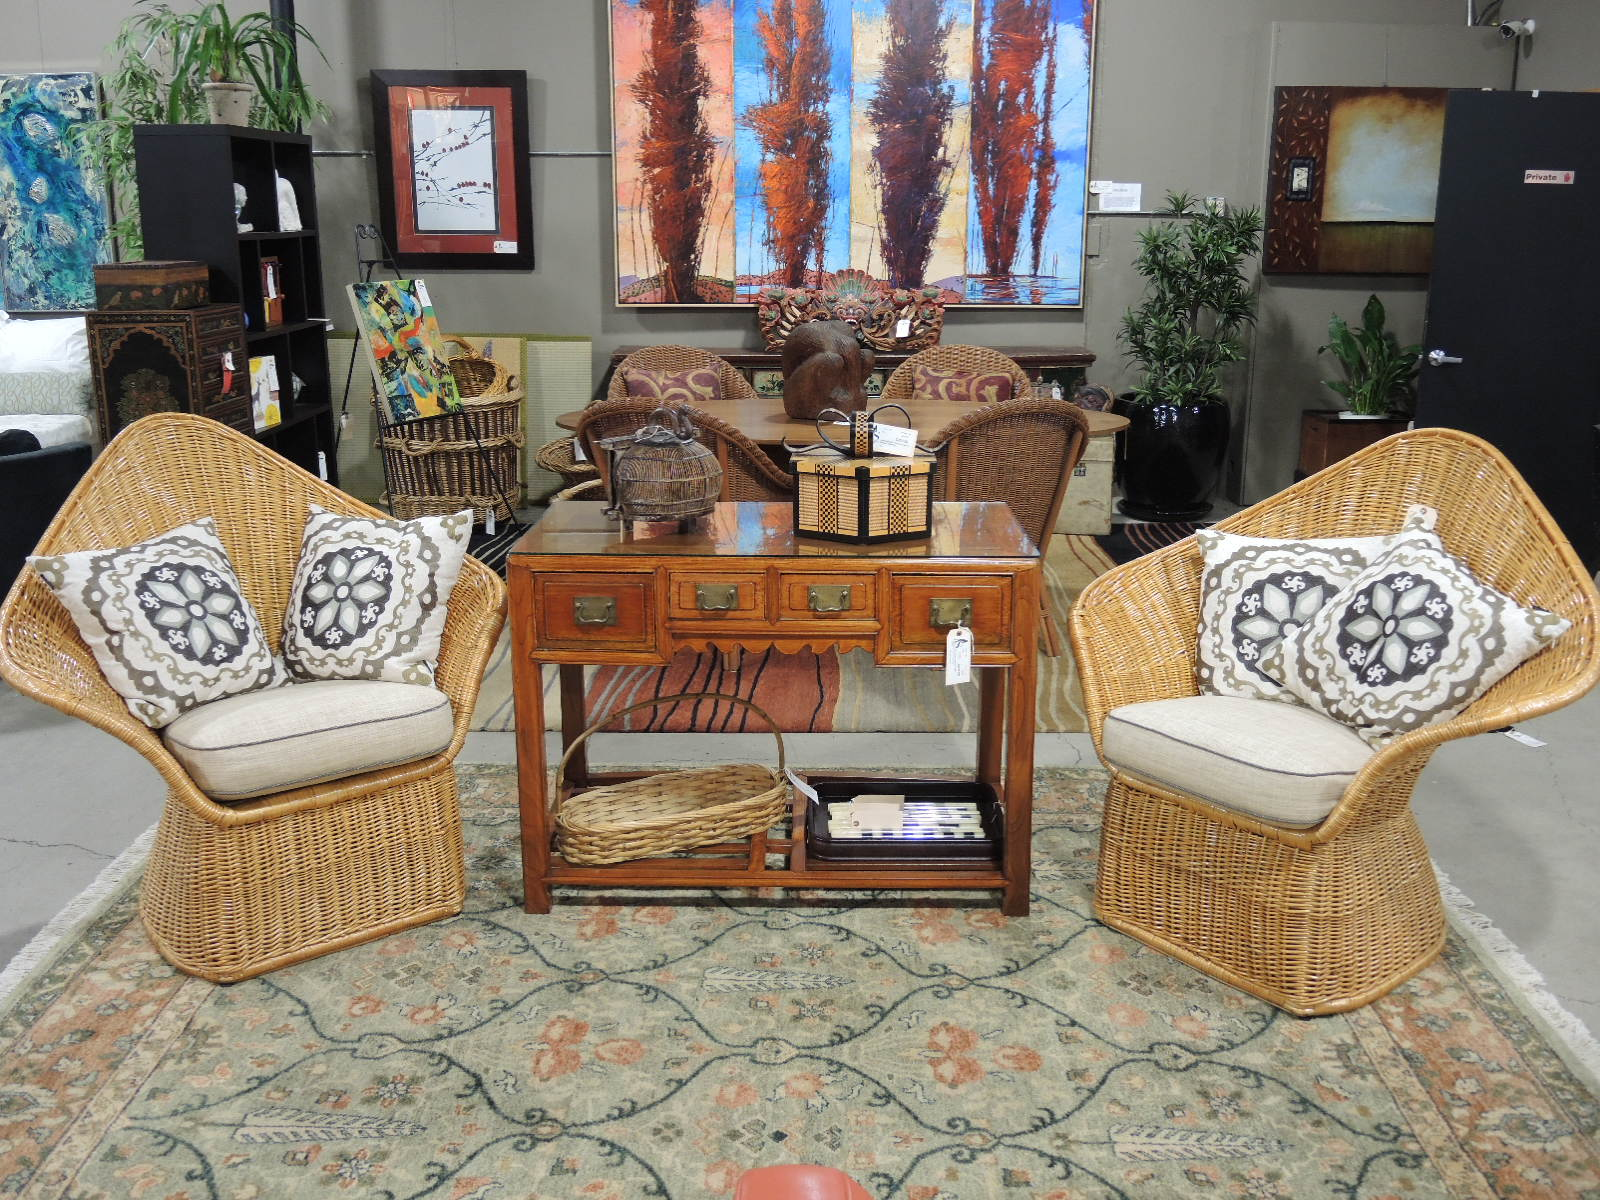 With Its Thick Weave And Natural Color, McGuire Furniture Captures The  Organic Beauty Of Rattan. Here We Have Two Vintage Chairs Designed By  Arthur Elrod ...